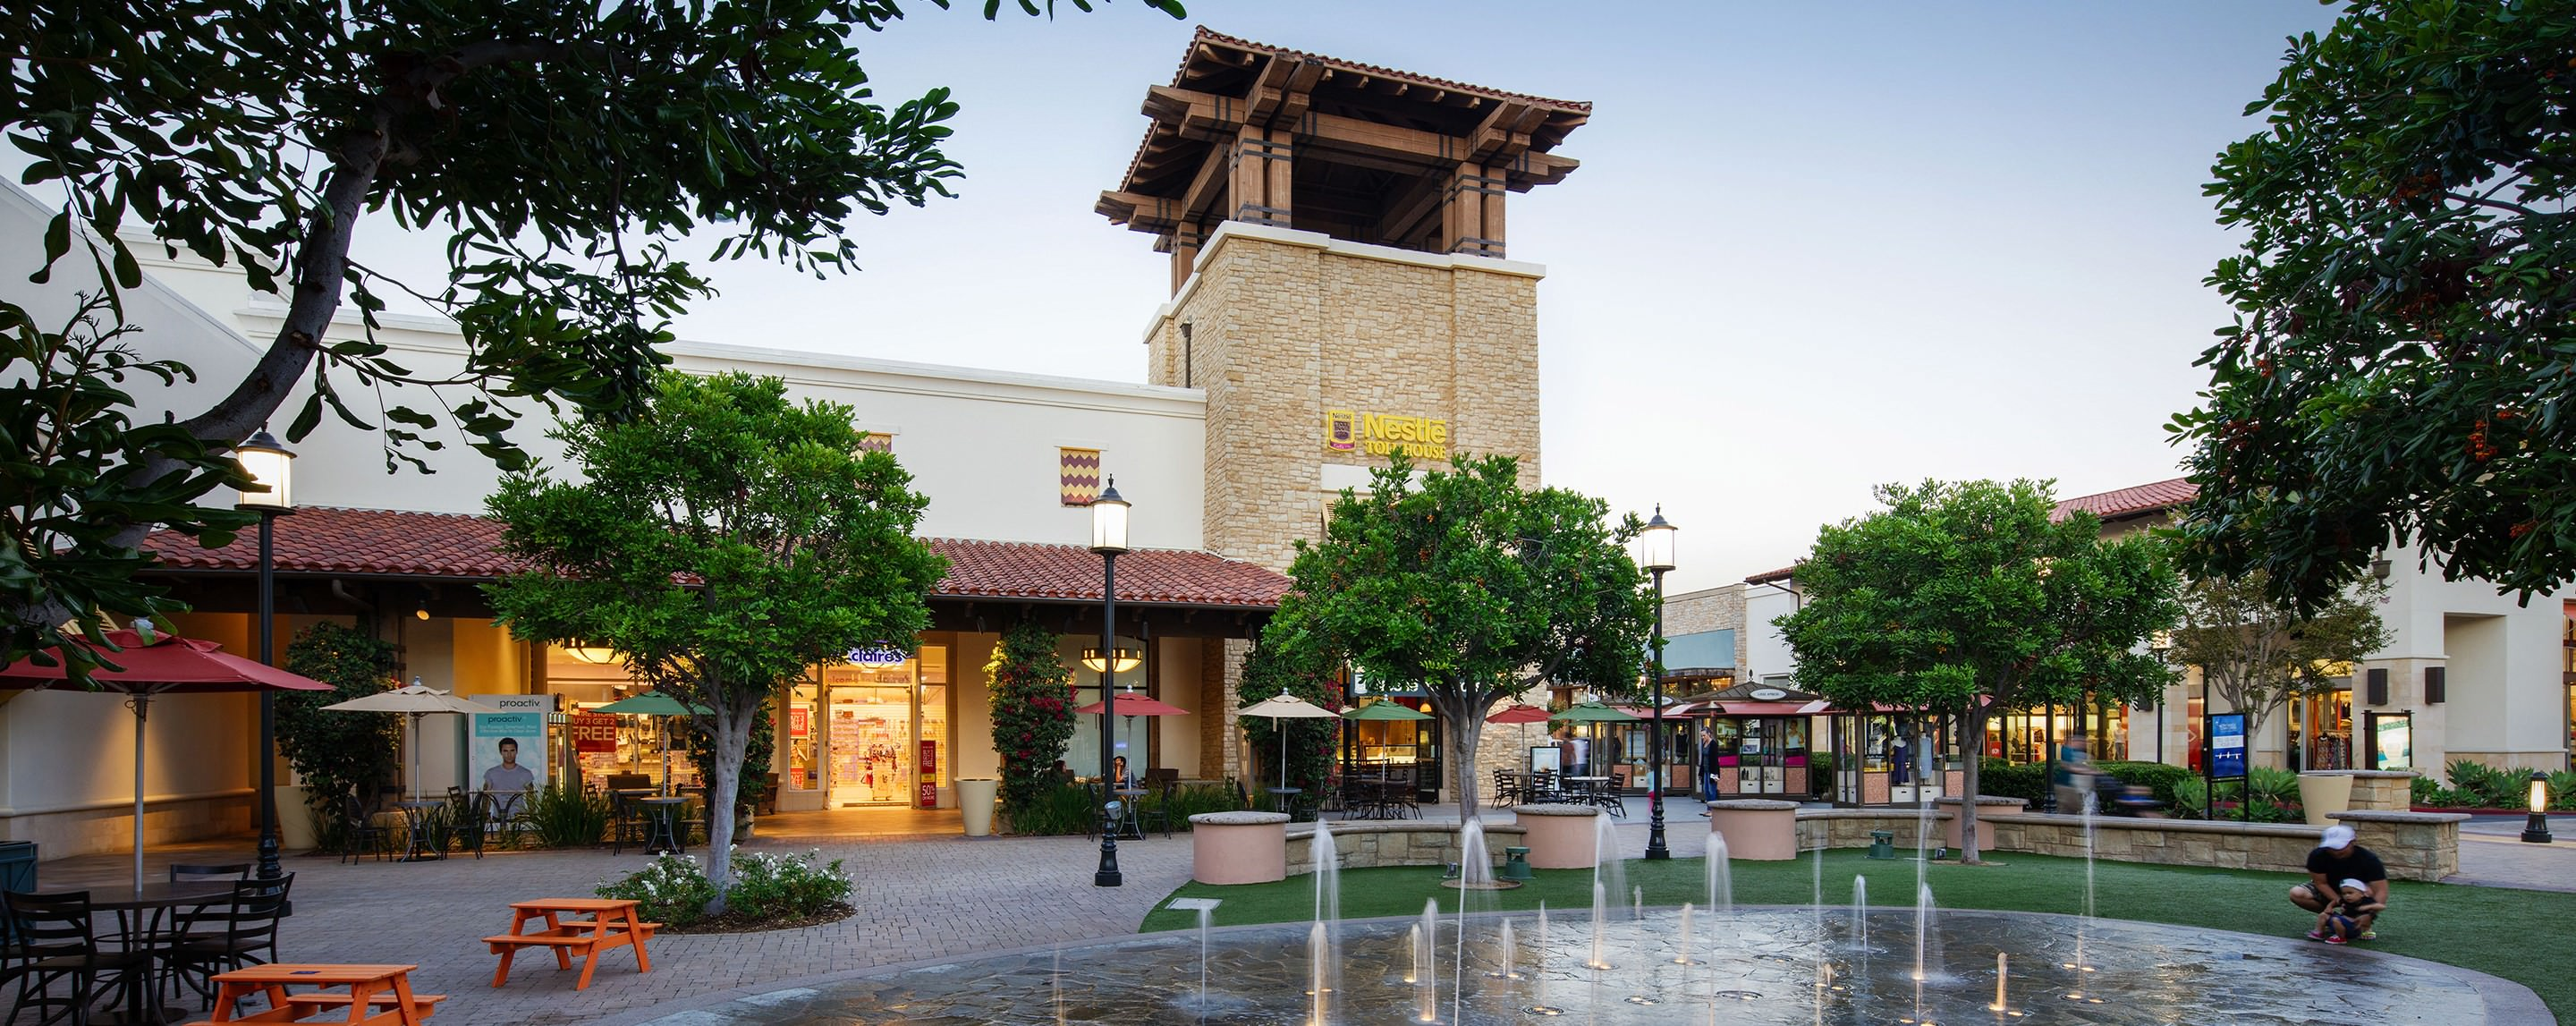 A decorative fountain and seating area fill up an outdoor common area at Otay Ranch Town Center